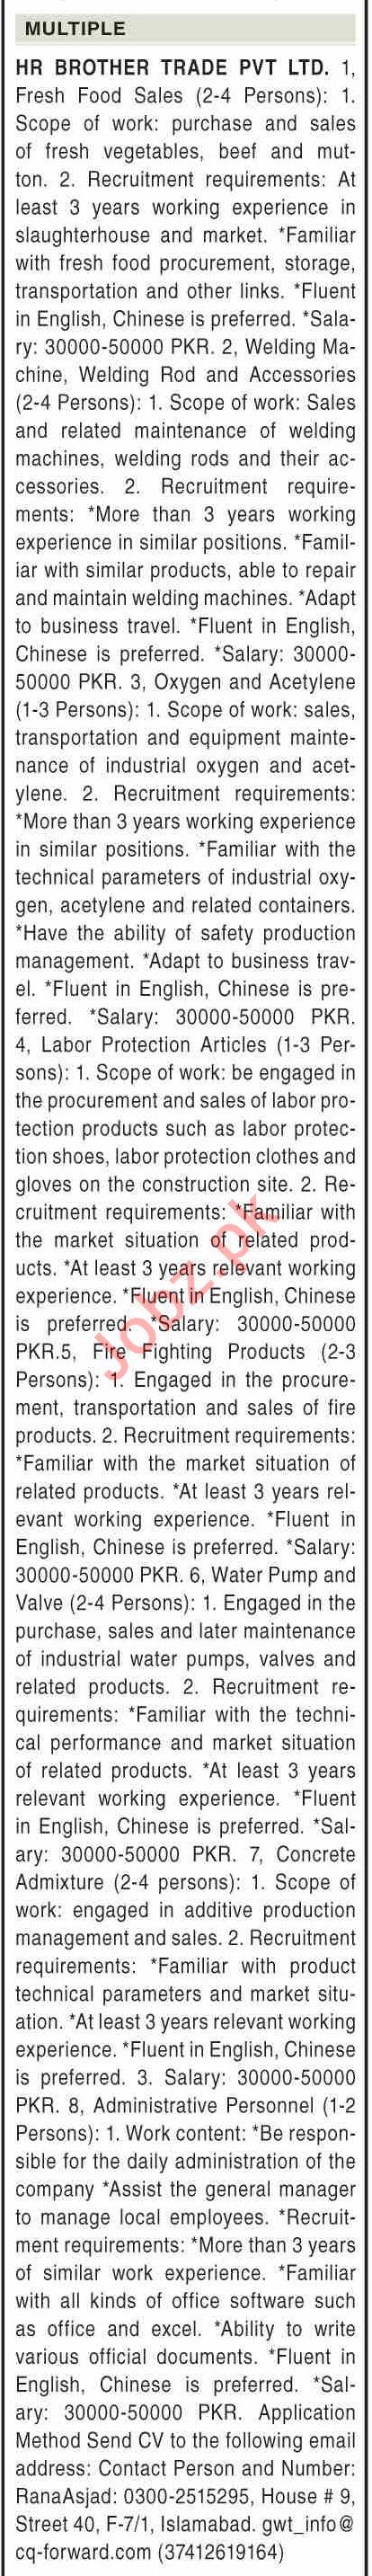 HR Brother Trade Islamabad Jobs 2021 for Food Sales Officer